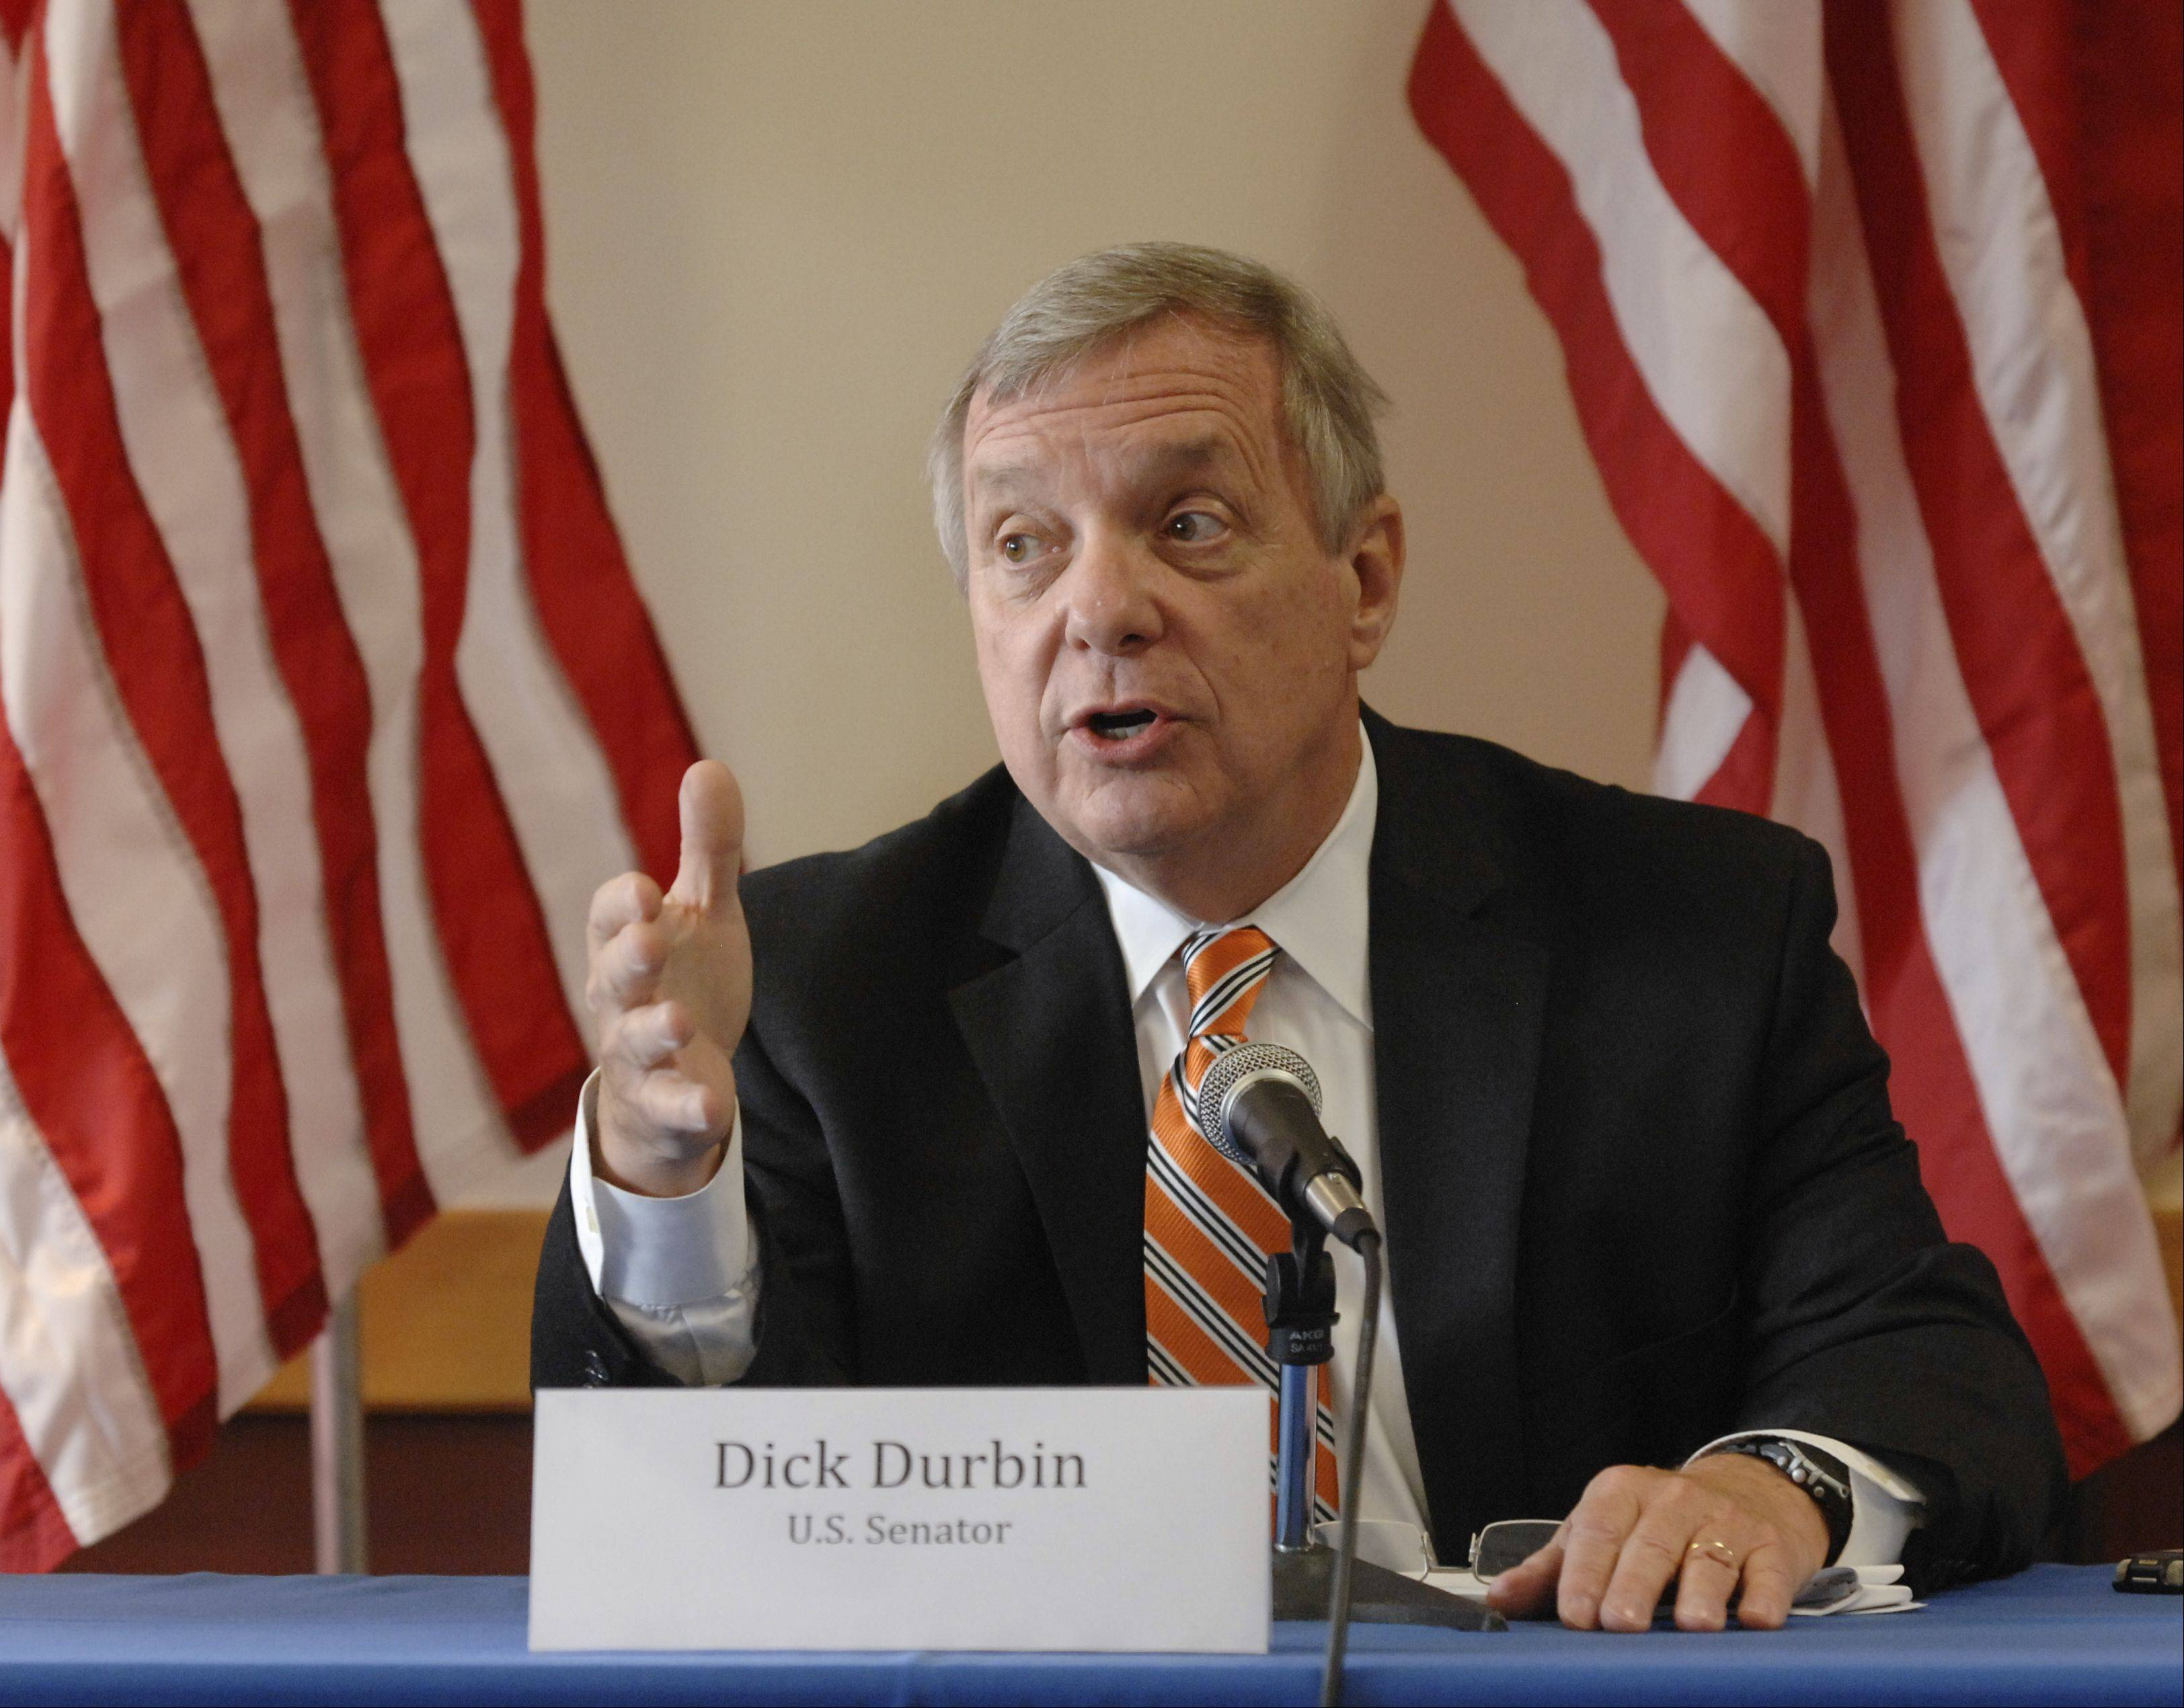 U.S. Sen Dick Durbin says he hopes the House takes action this year on immigration legislation the Senate approved to enhance border security and establish a legal path to citizenship for some of the nation�s estimated 11 million undocumented immigrants.